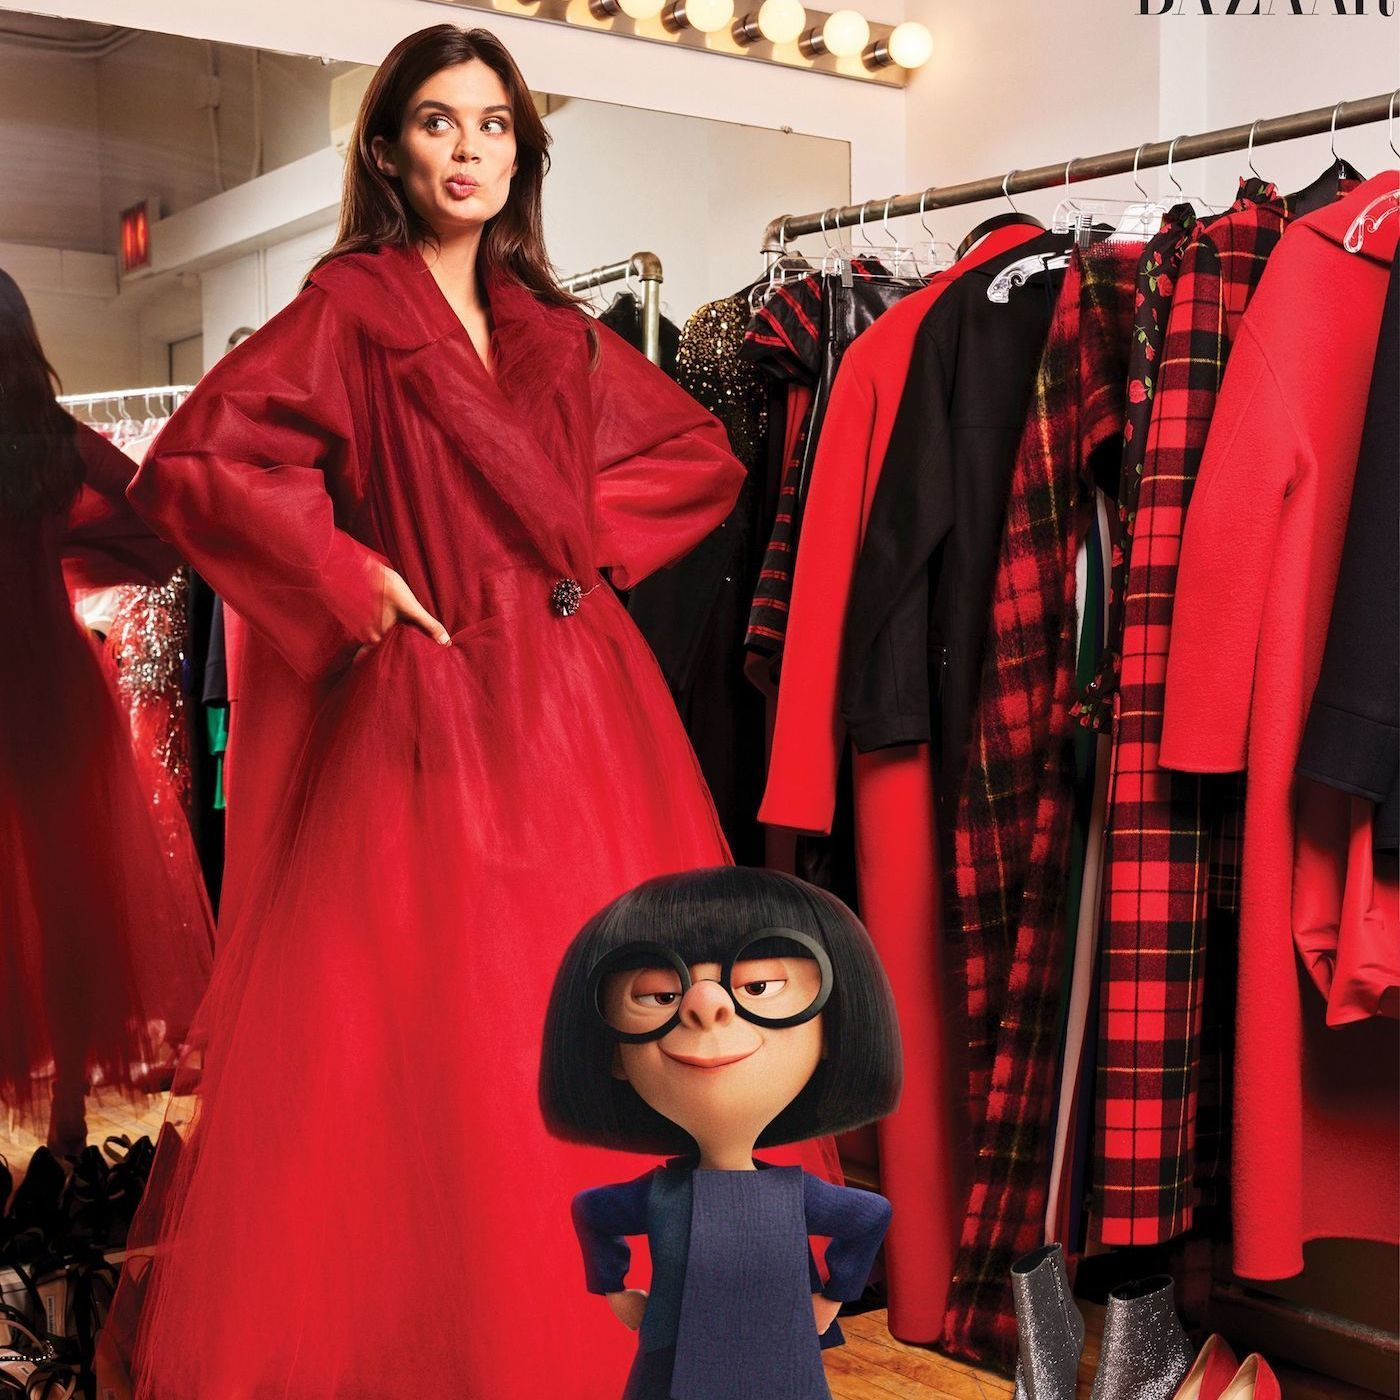 5 Things We Learned From Edna Mode's Interview in Harper's Bazaar